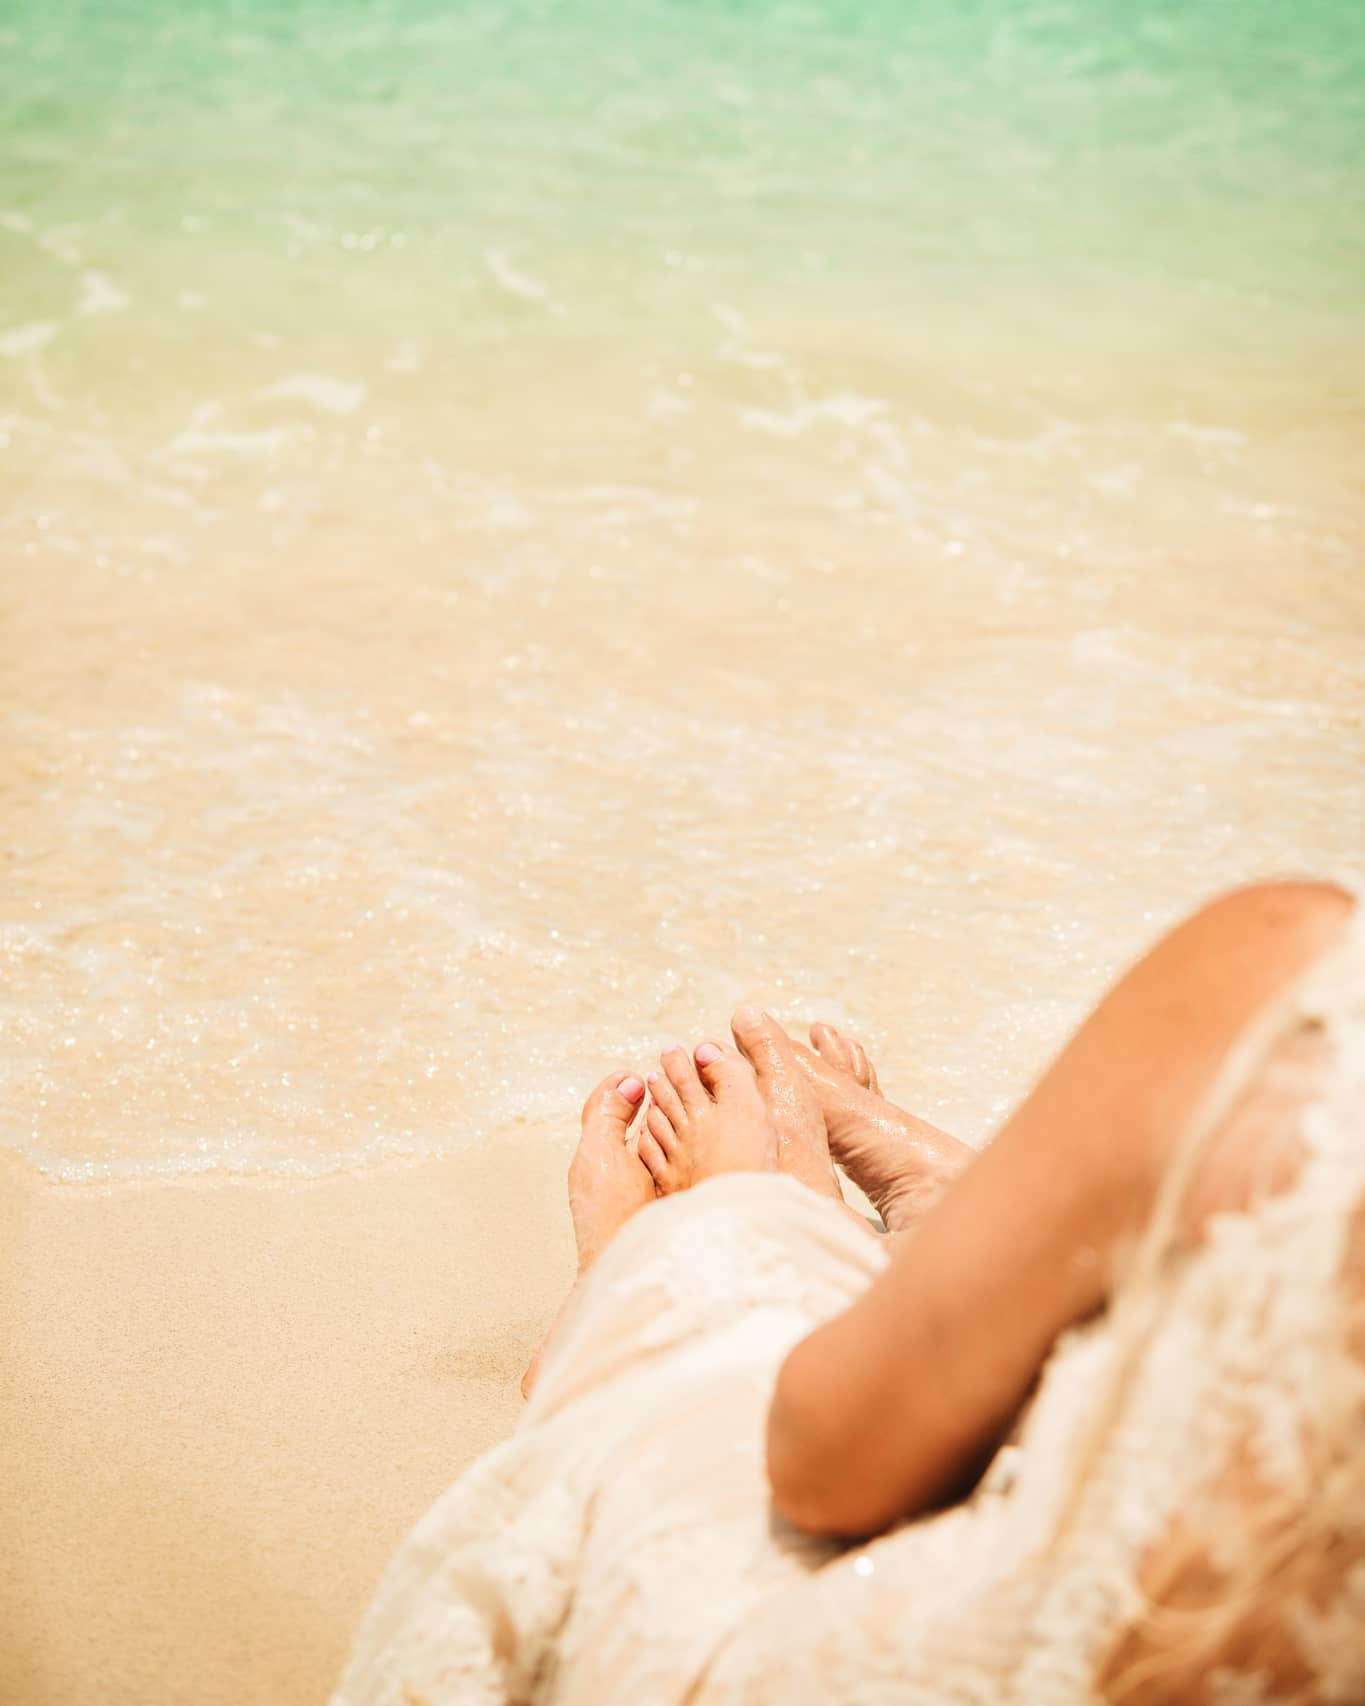 The weekend is here! Let's dip our toes in...photo by @kathryncooperweddings